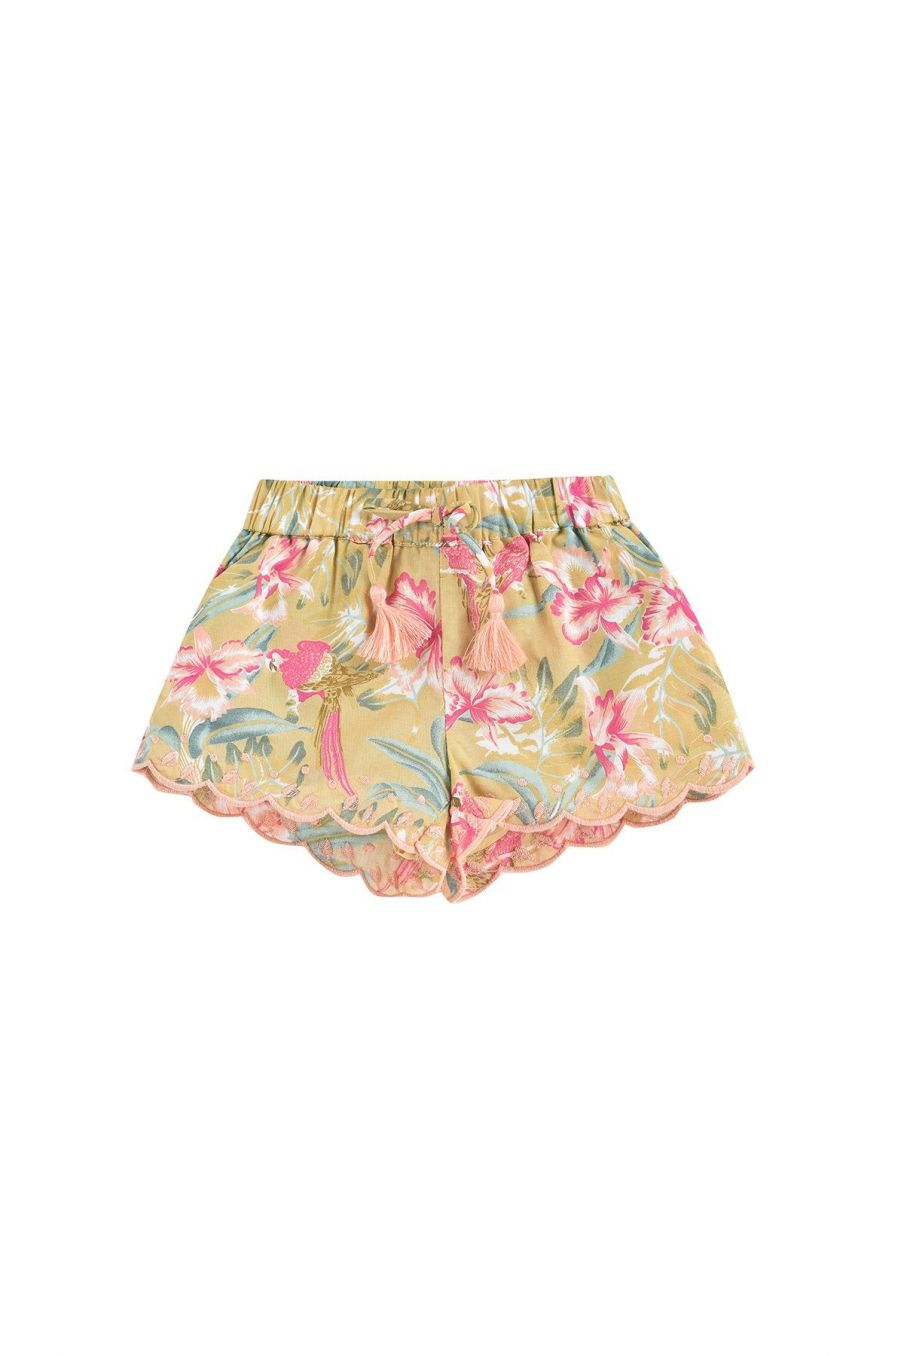 boheme chic vintage short bébé fille vallaloid soft honey parrots